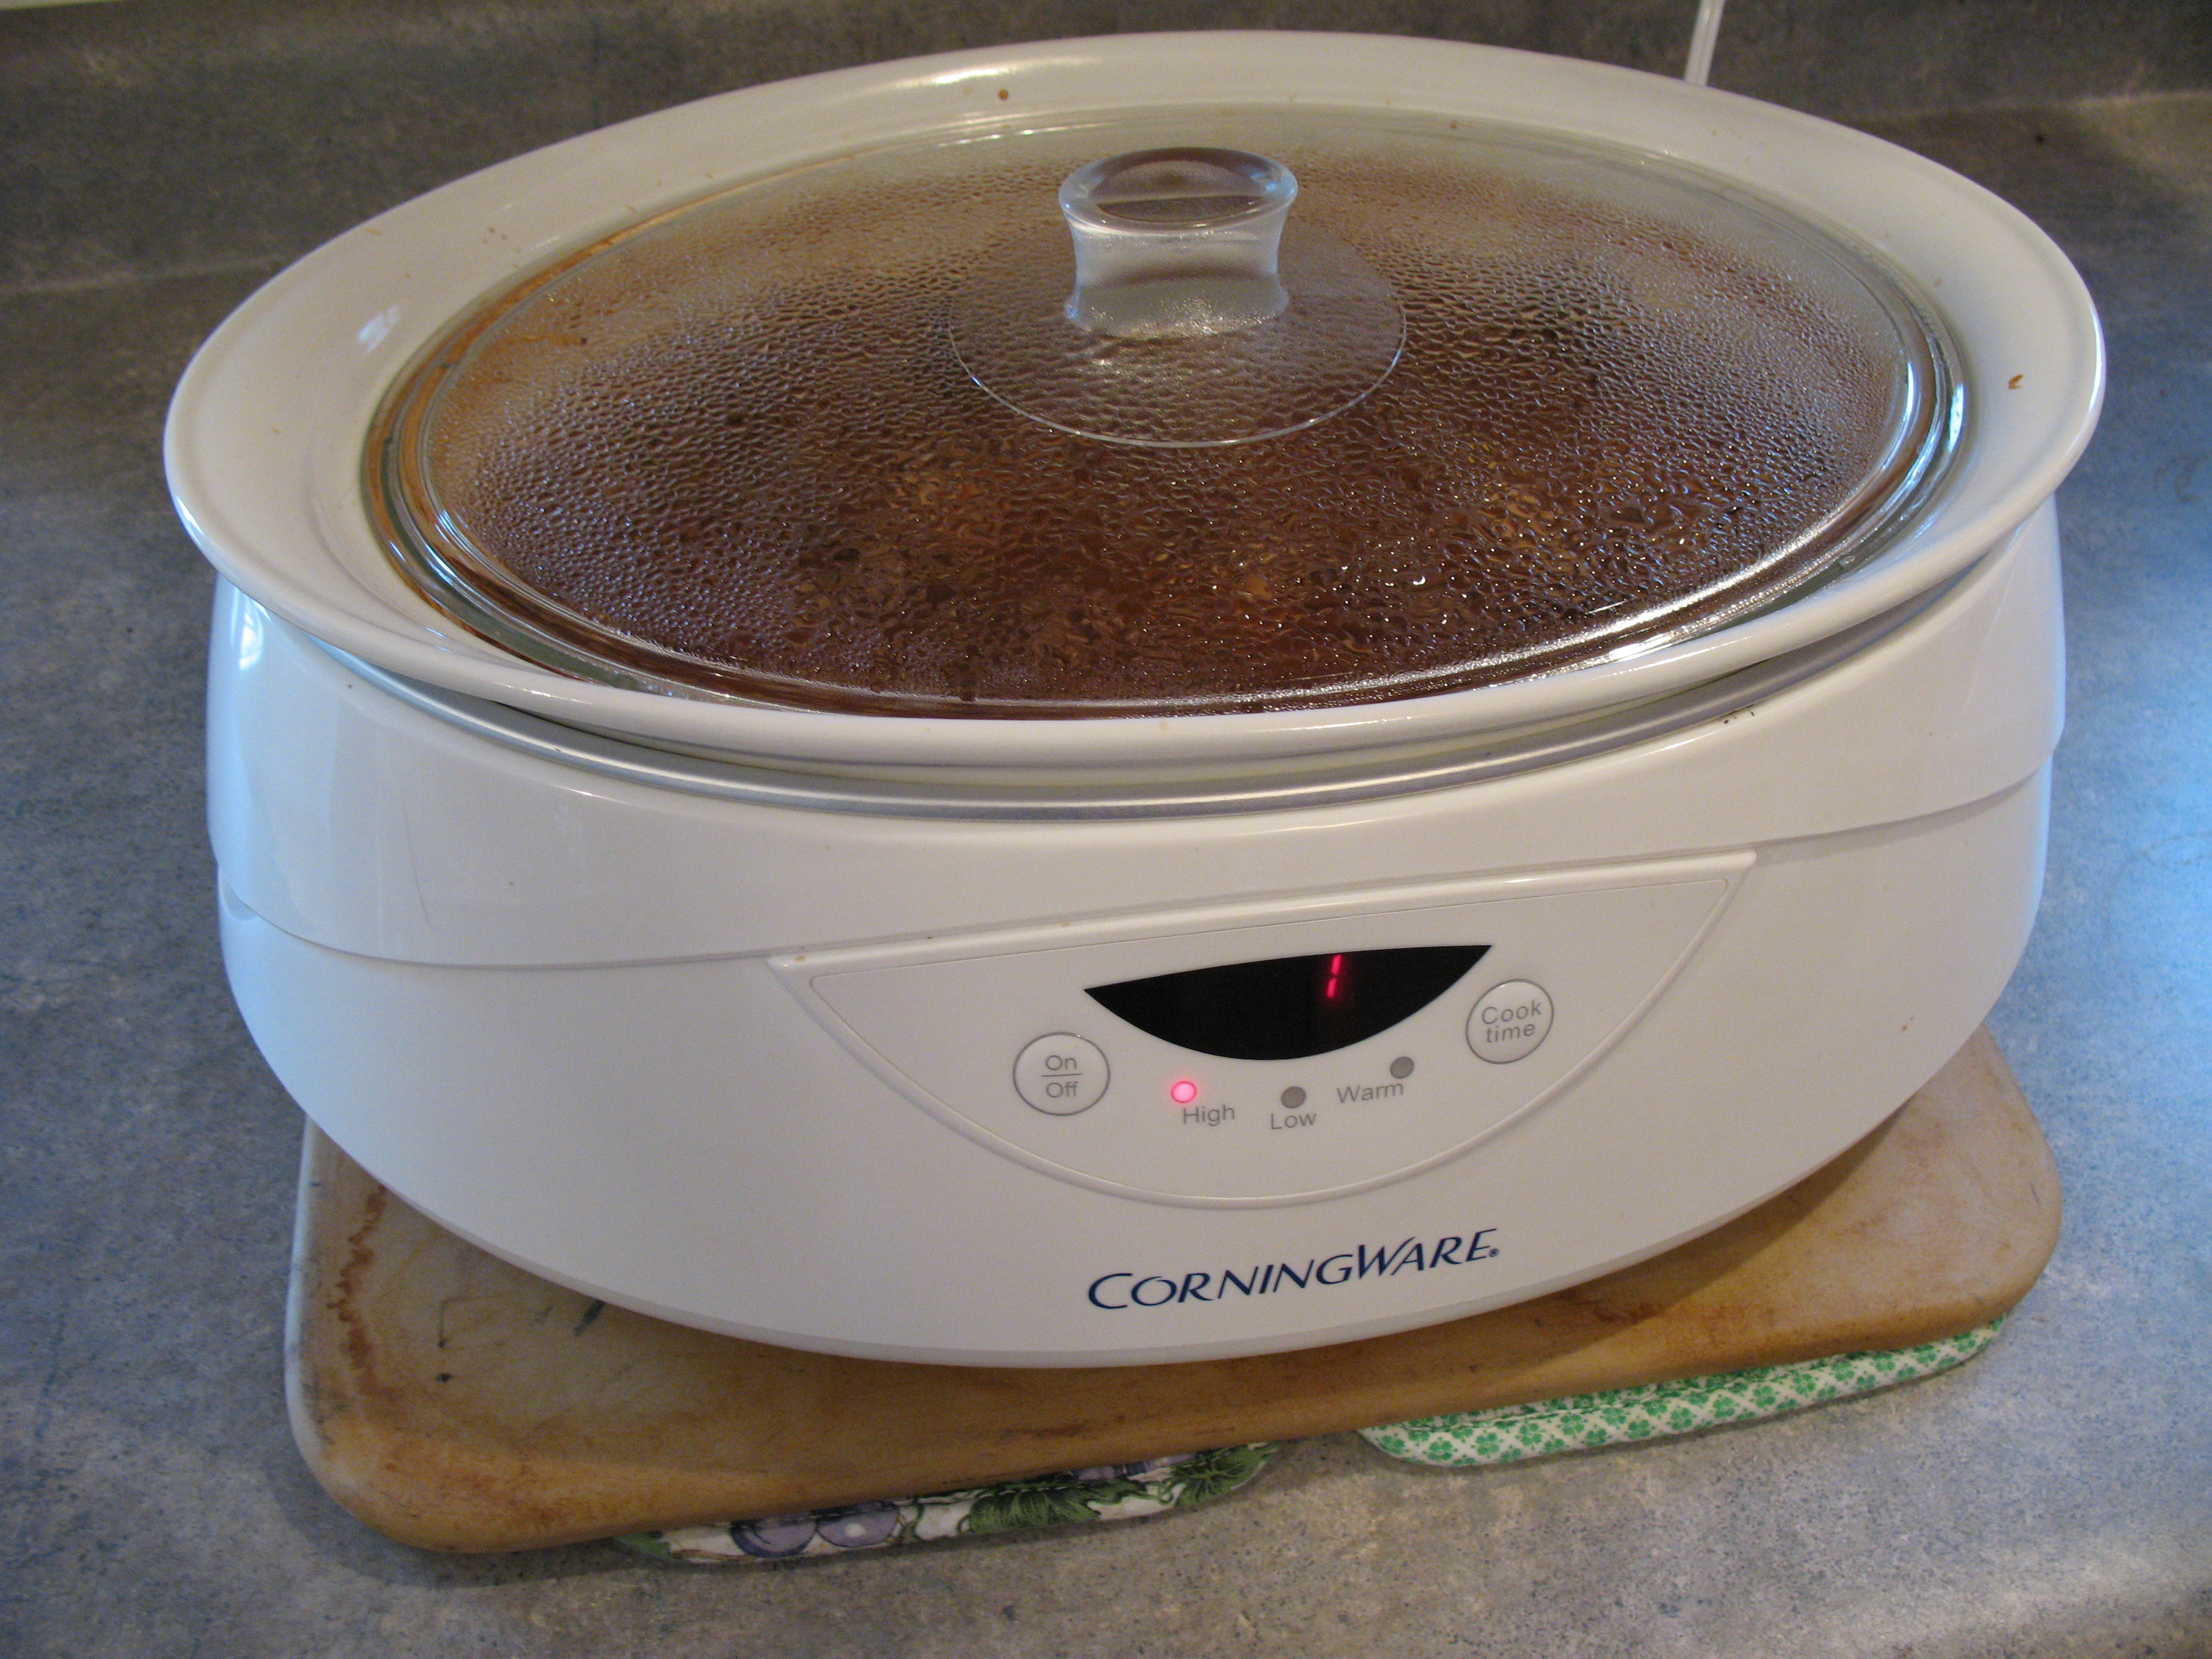 Description Oval Crock Pot.jpg